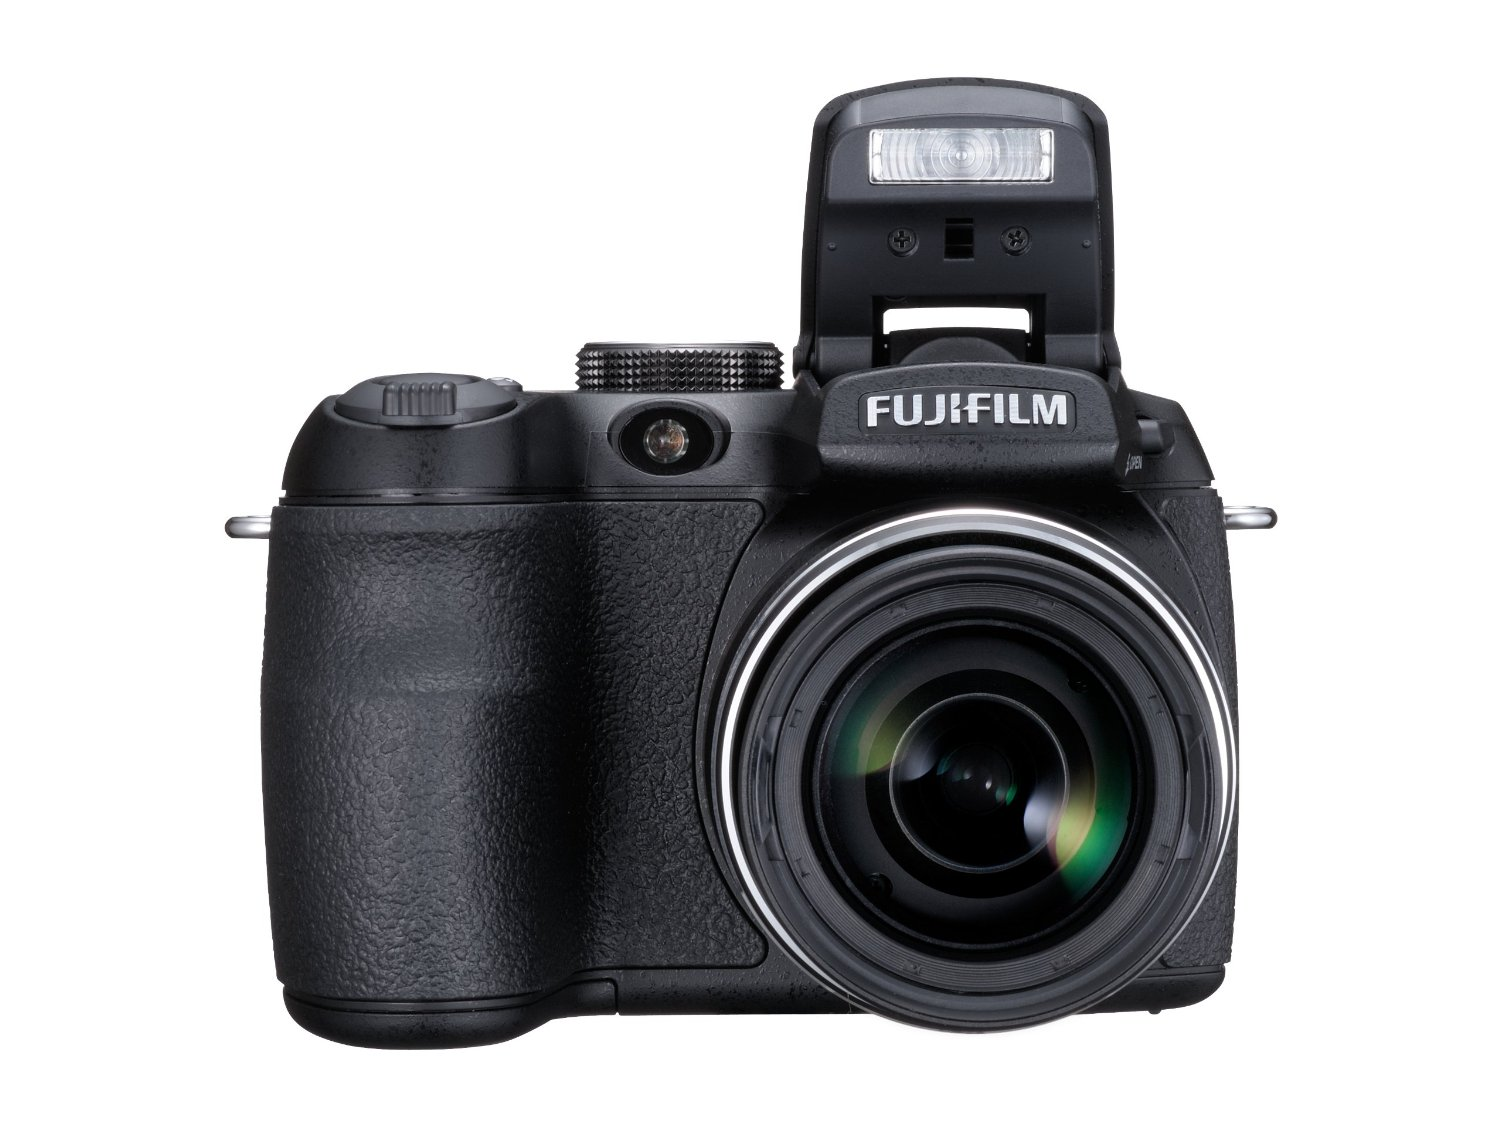 Fujifilm FinePix S1500 Digitalkamera 3